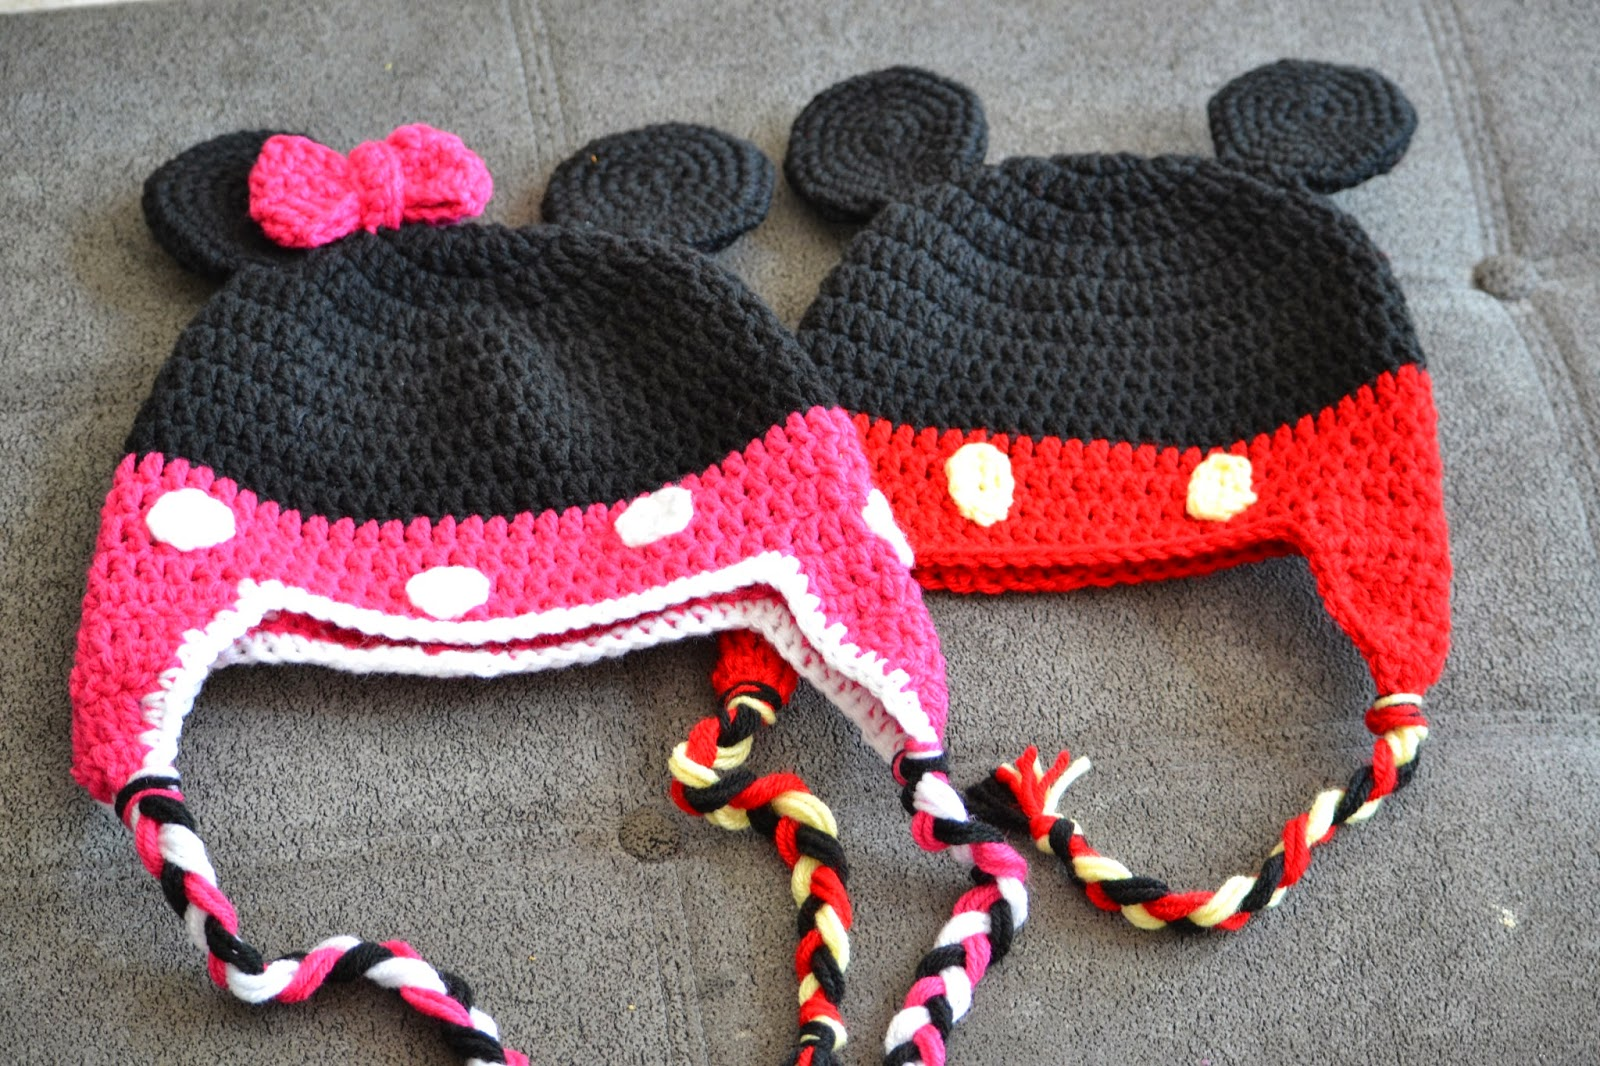 Crochet Pattern Mickey Mouse Shoes Joy Studio Design ...